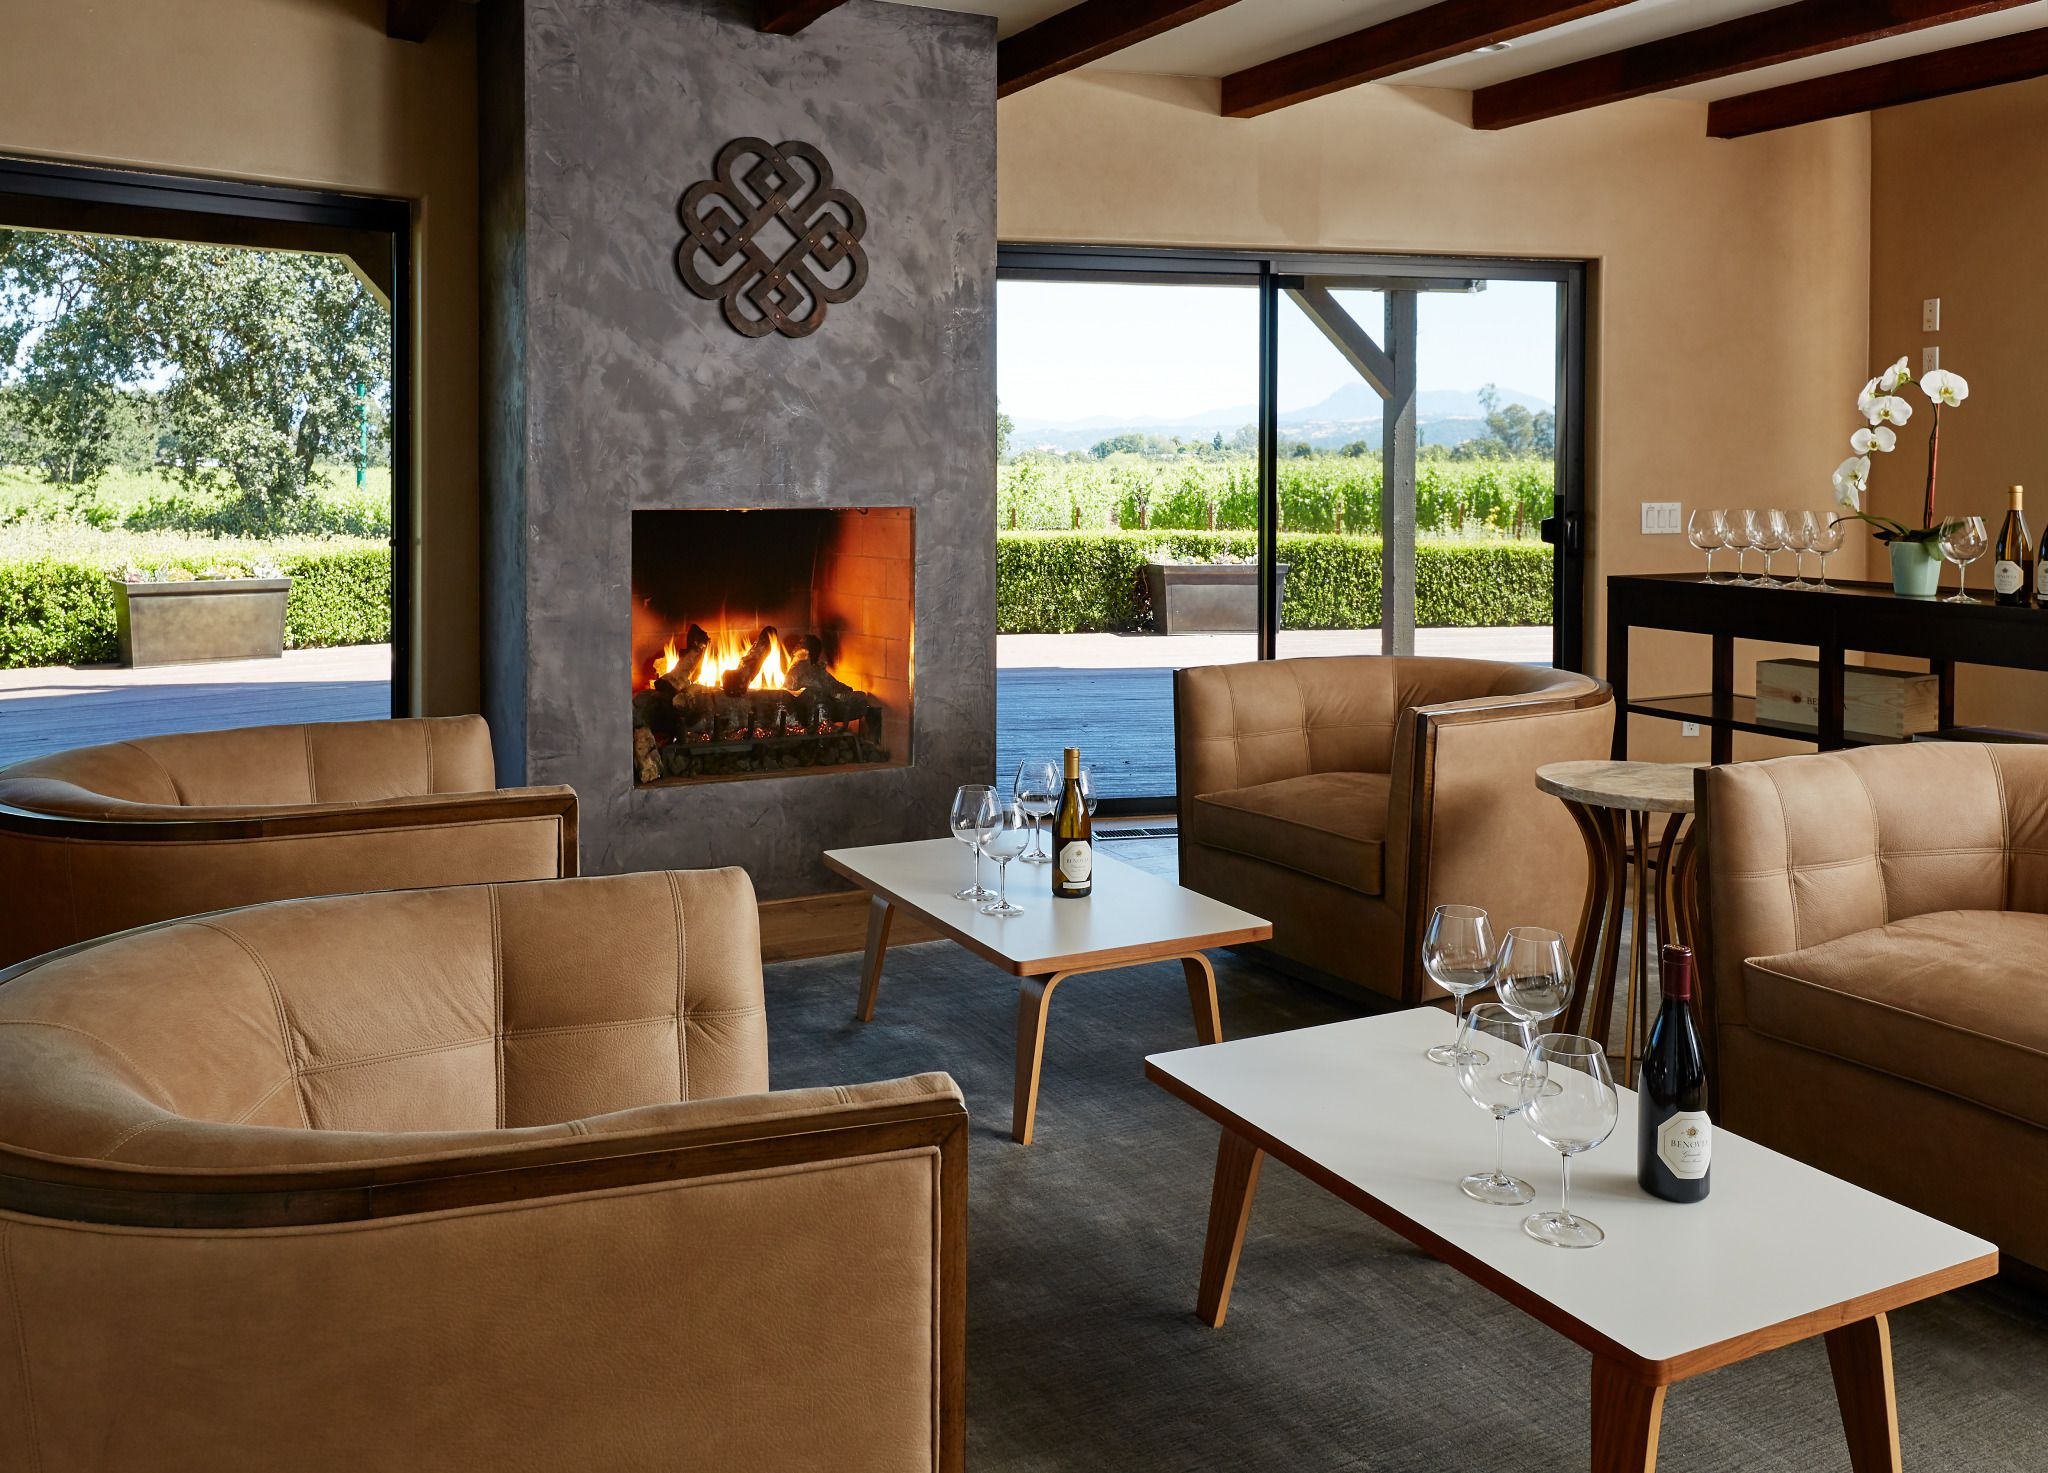 The Best Wineries to Visit in Sonoma County